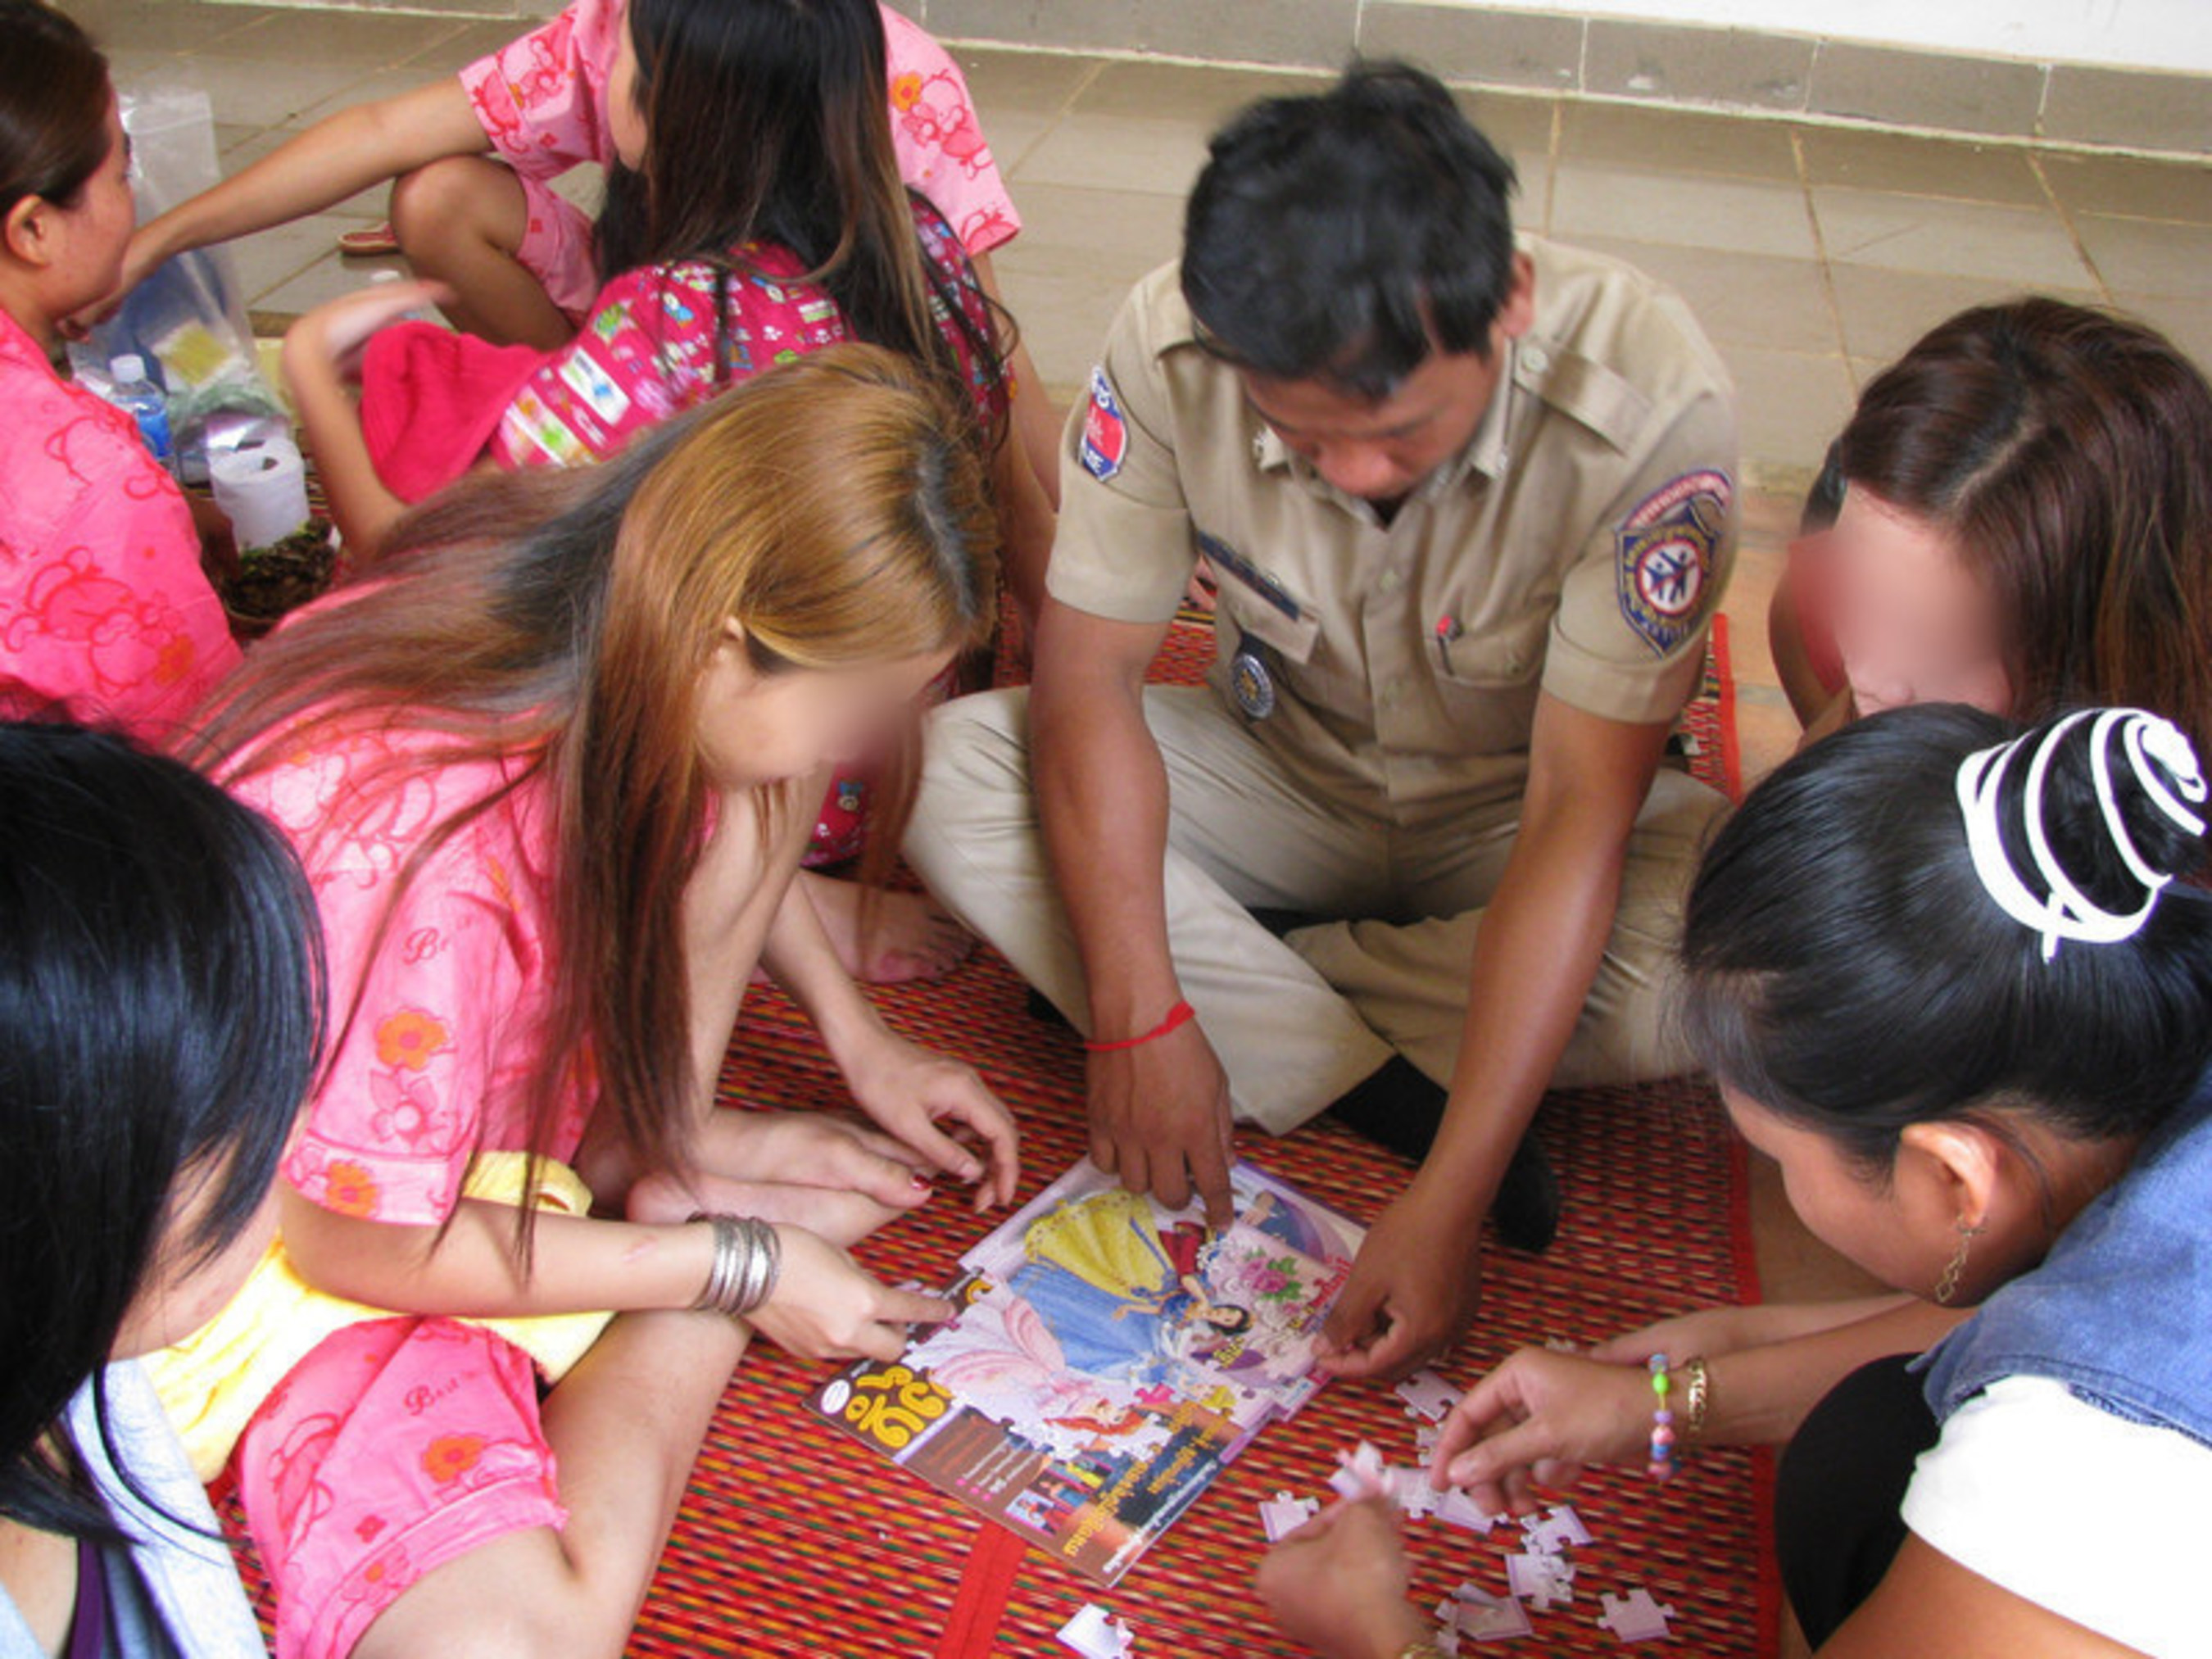 A Cambodian police officer helps trafficking survivors piece together a princess puzzle.  Since the early 2000s, Cambodia has made enormous progress in combating the commercial sexual exploitation of children.